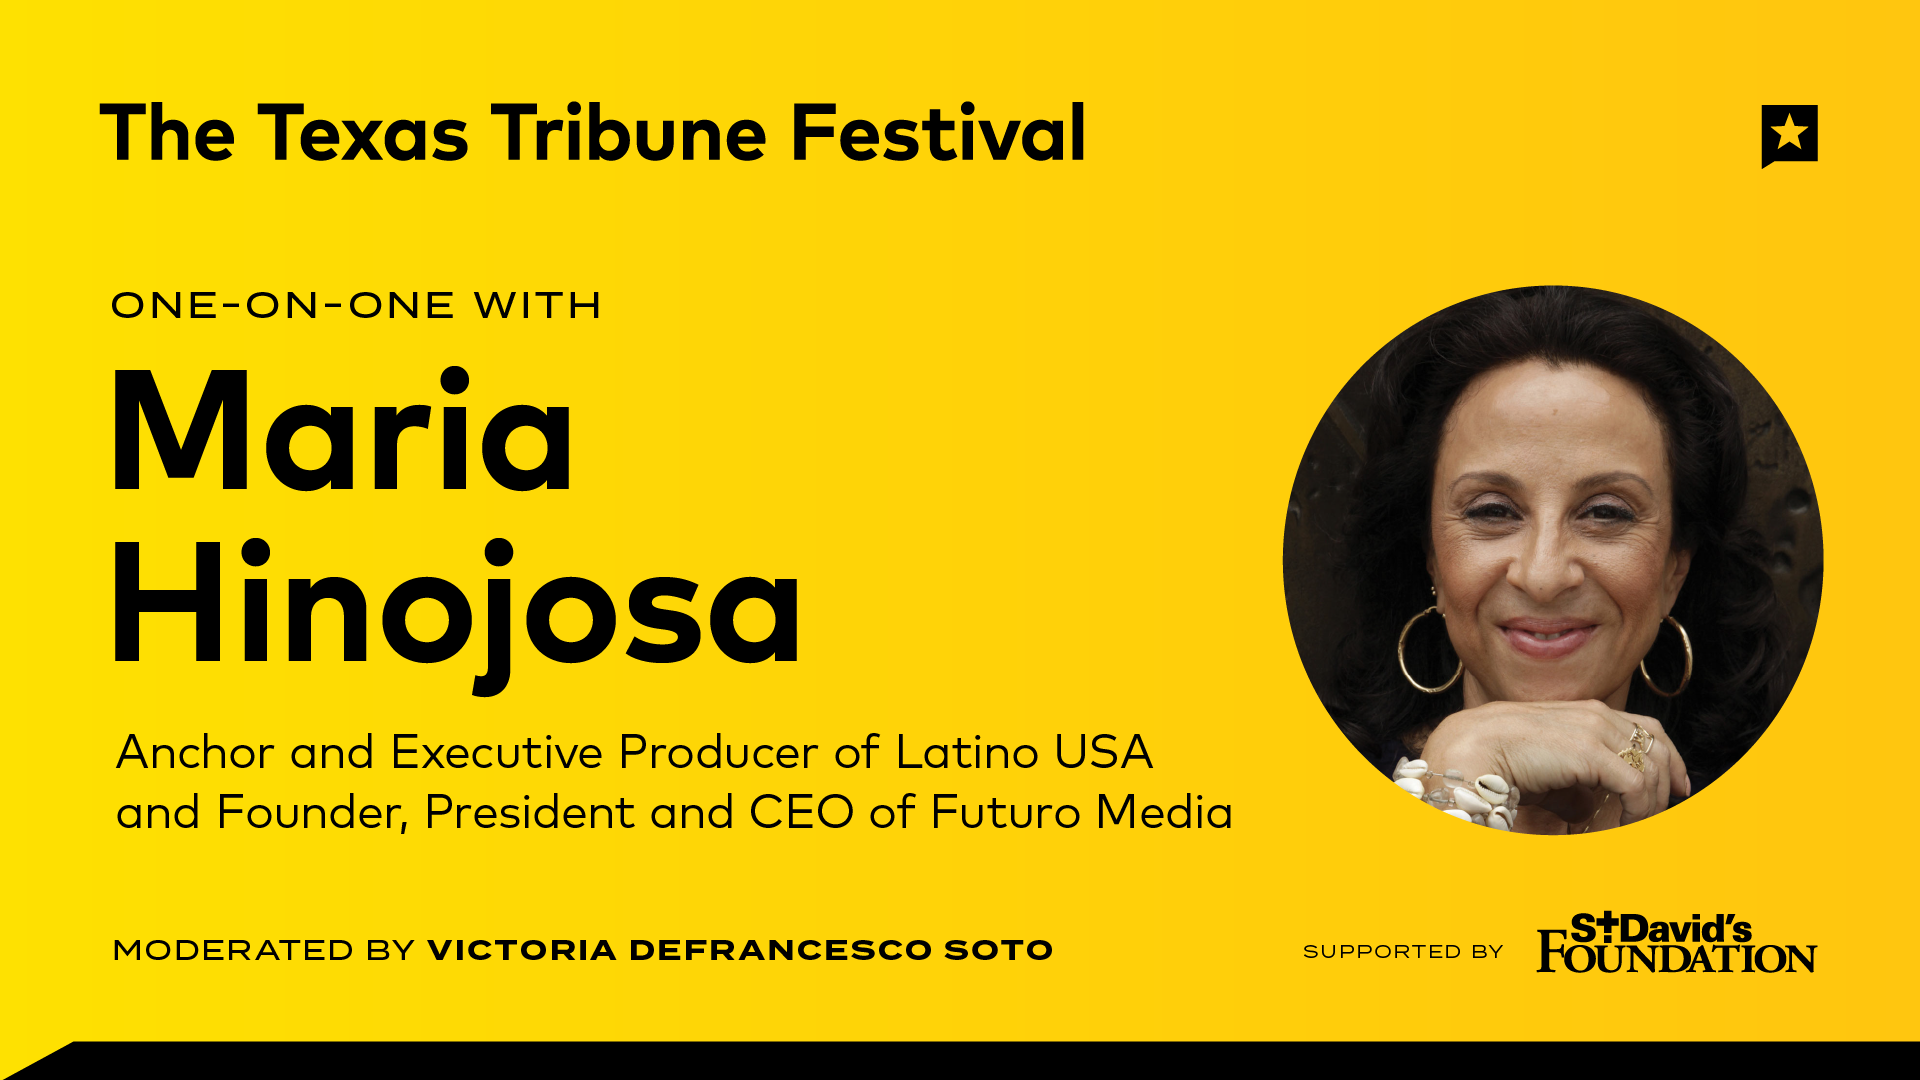 One-on-One with Maria Hinojosa